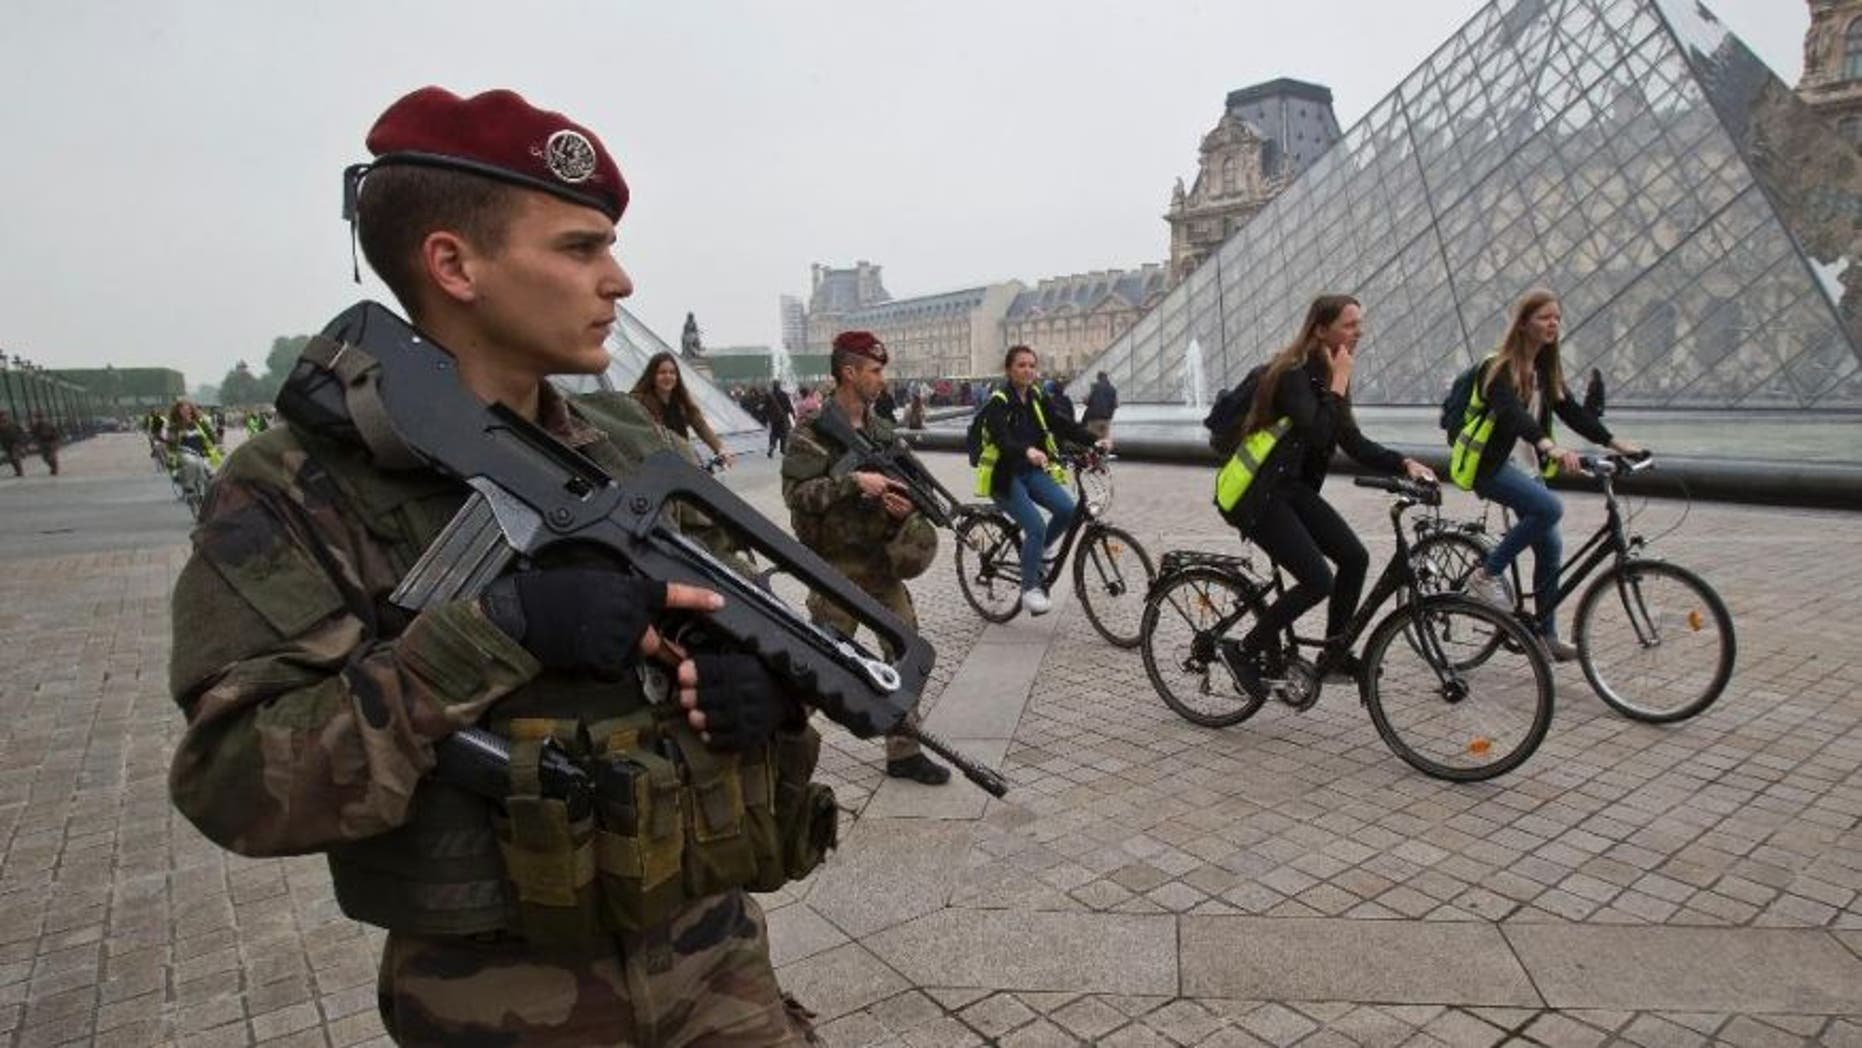 A French soldier staff sergeant Baudouin guards the iconic entrance to the Louvre museum in Paris, Friday, May 13, 2016.